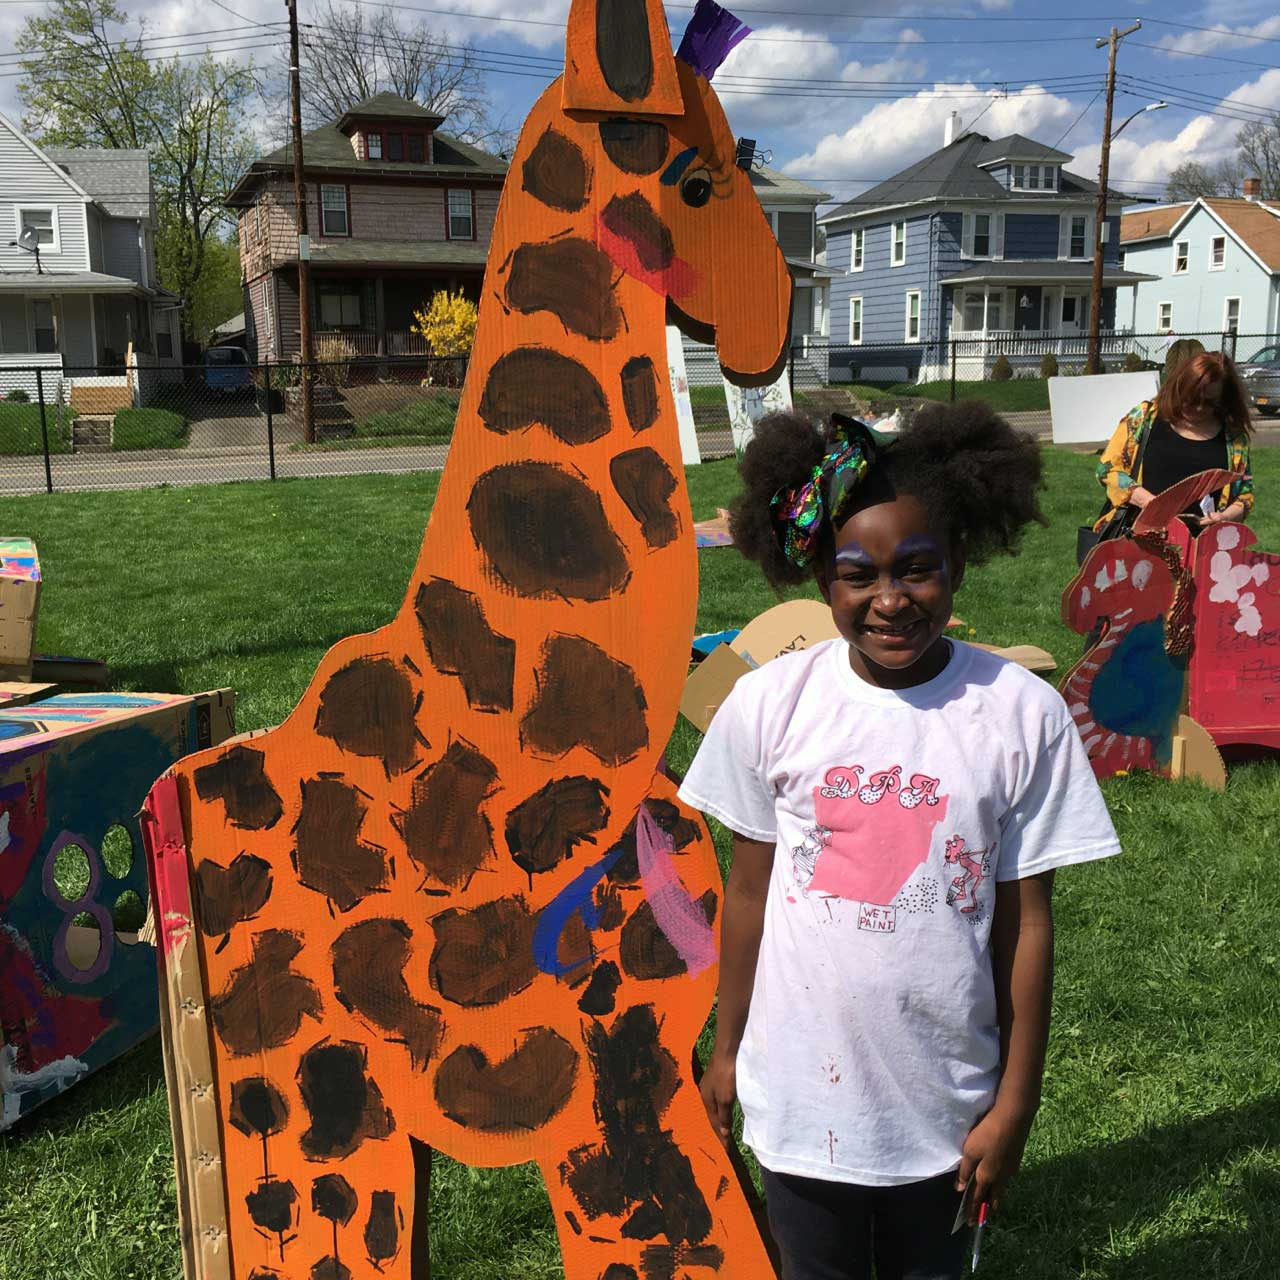 Bridge giraffe, Muralfest